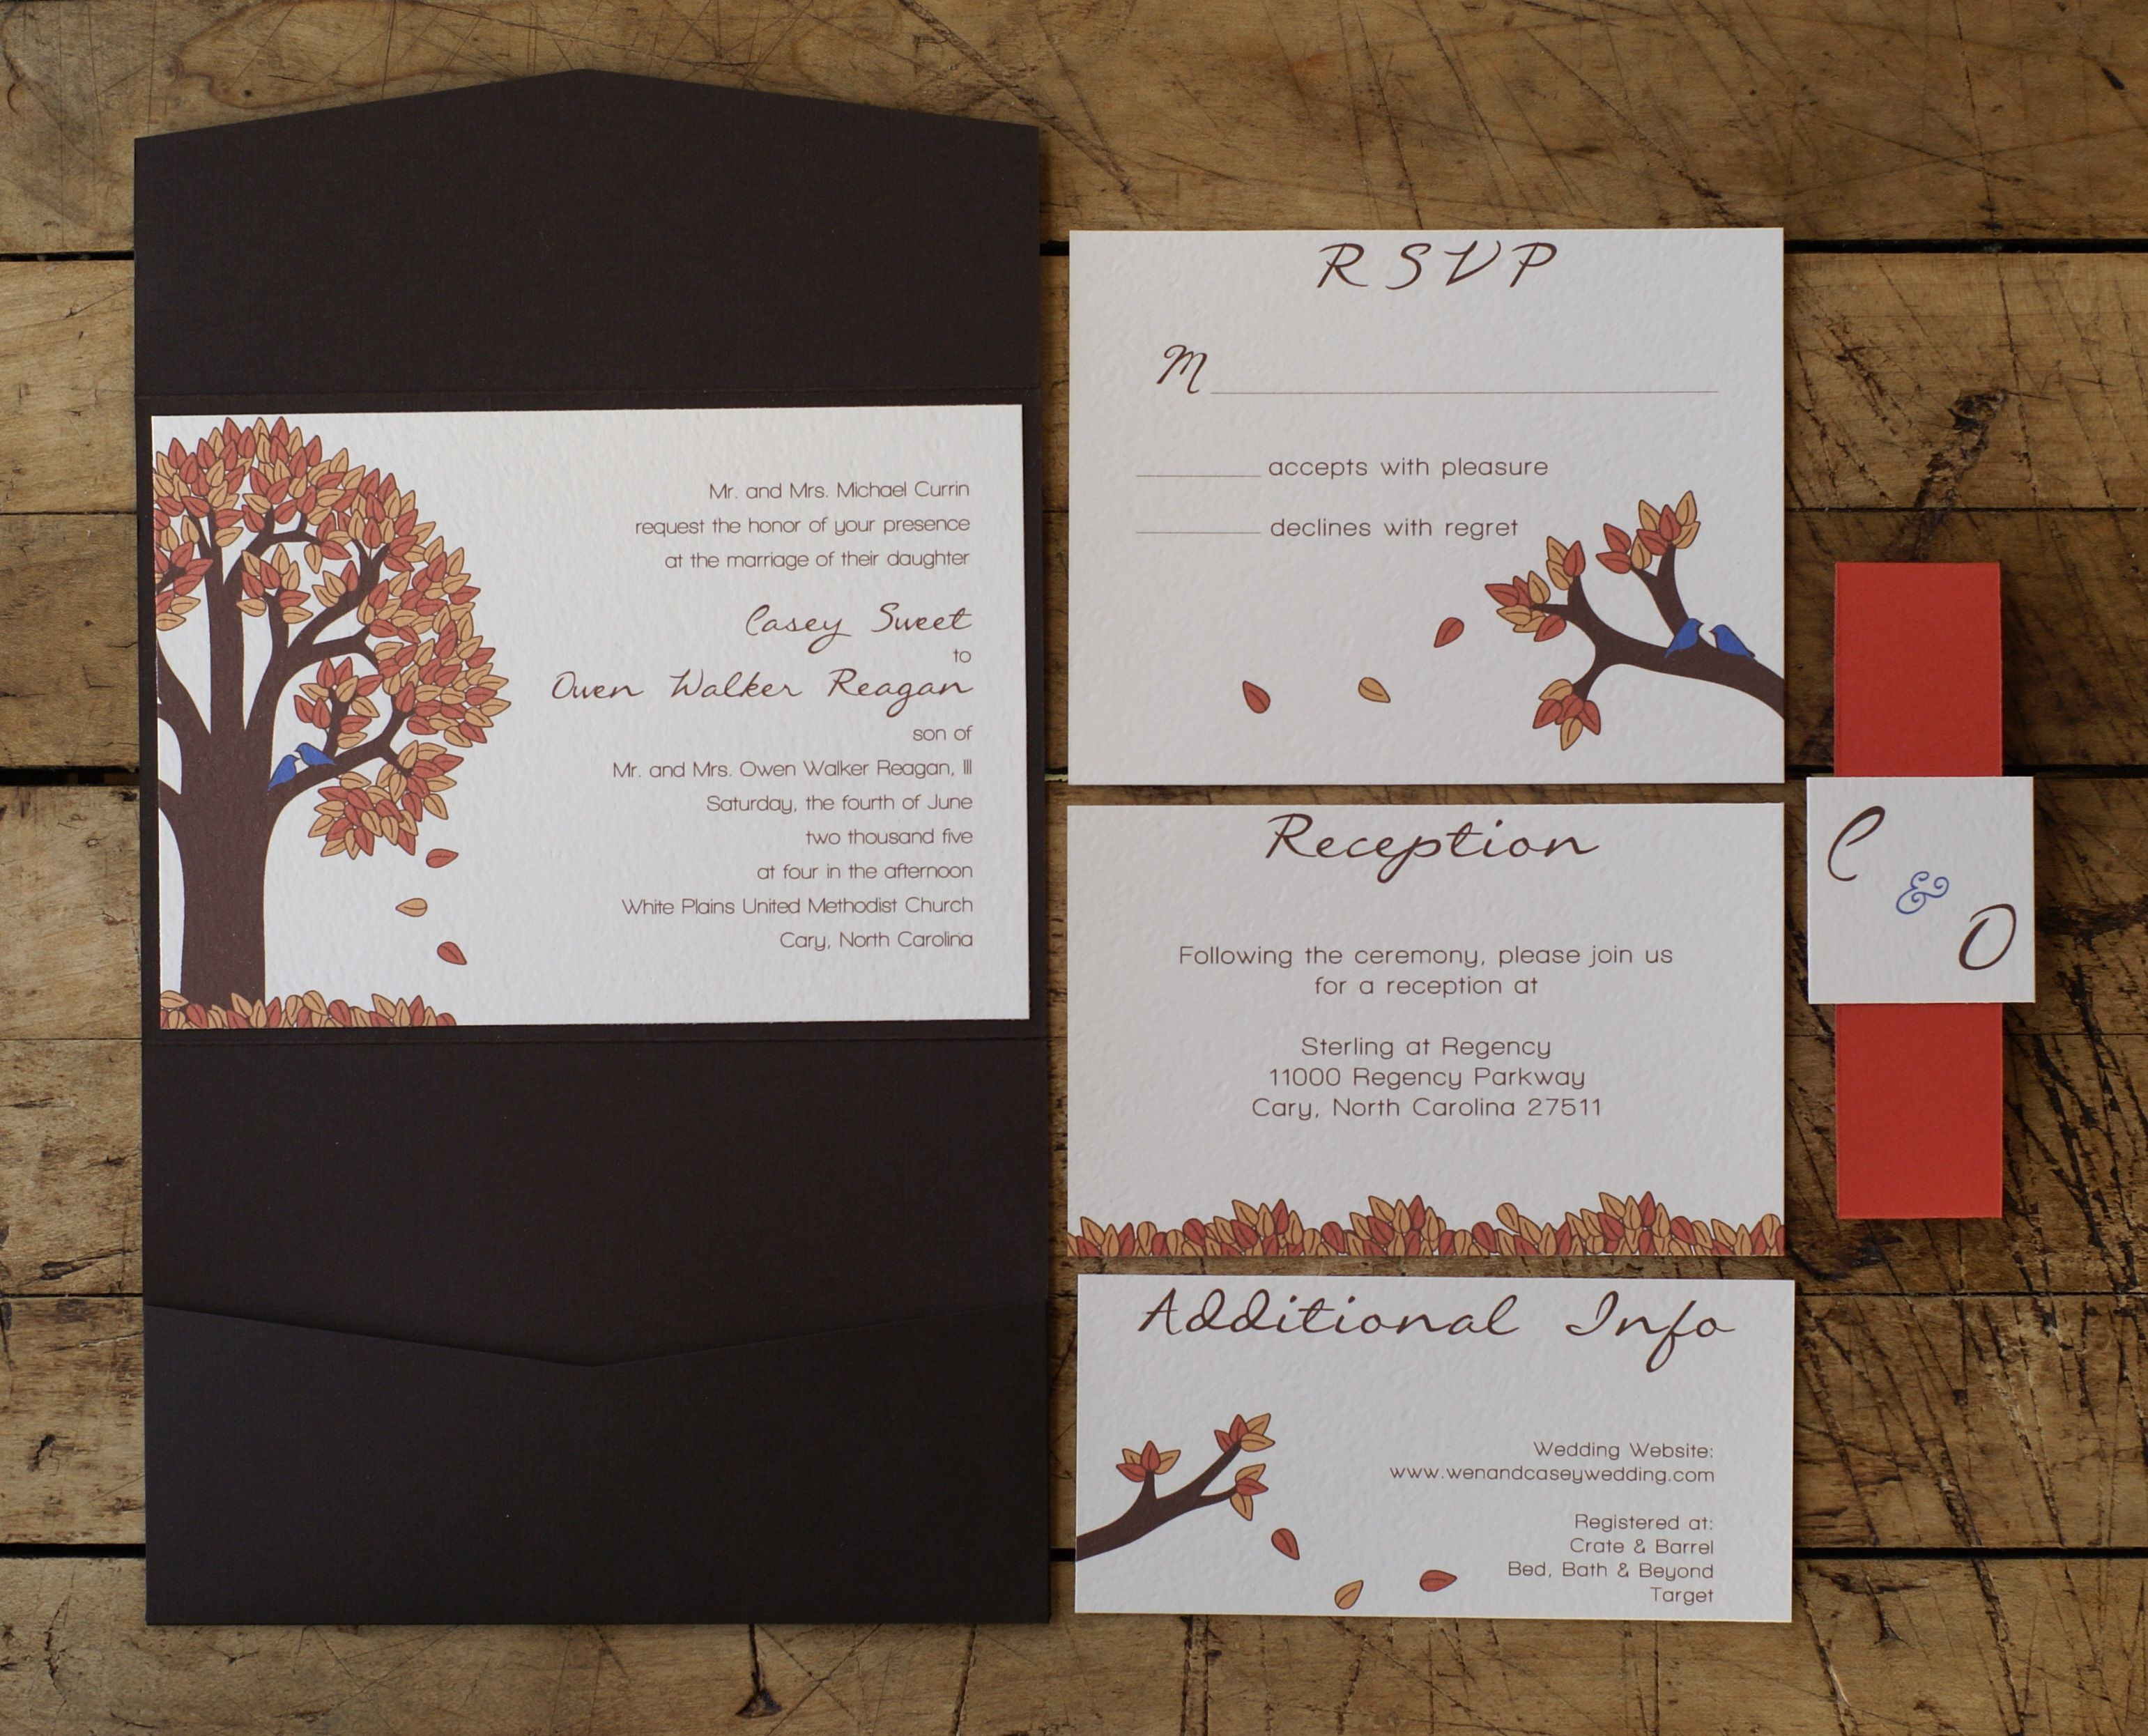 Wedding Invitations from Casey | Wedding Ideas | Pinterest | Wedding ...